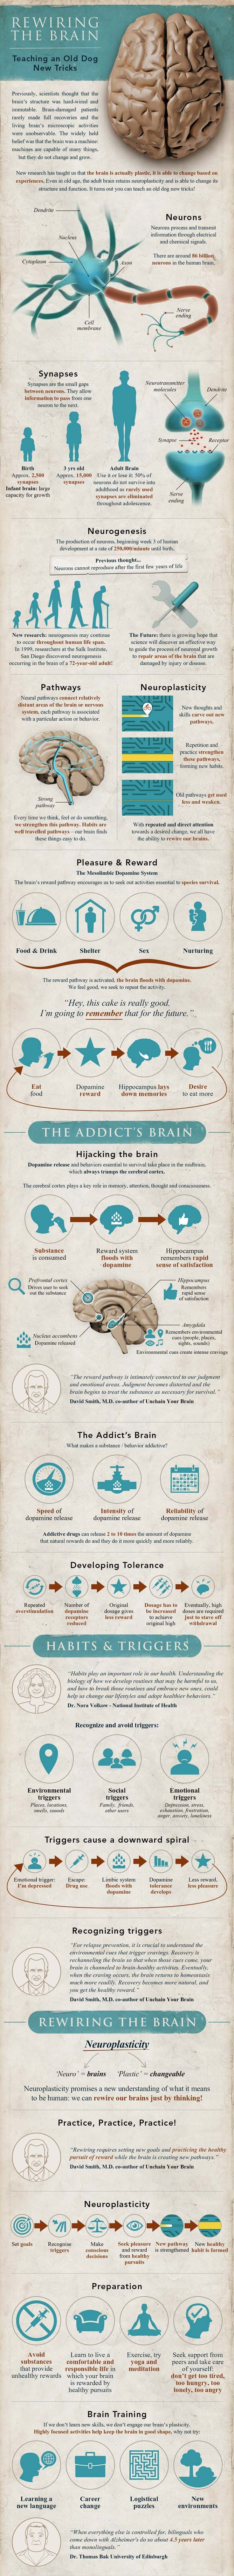 This Nifty Infographic Is A Great Introduction To Neuroplasticity And Cognitive Therapy Brain PartsCognitive TherapyTrauma